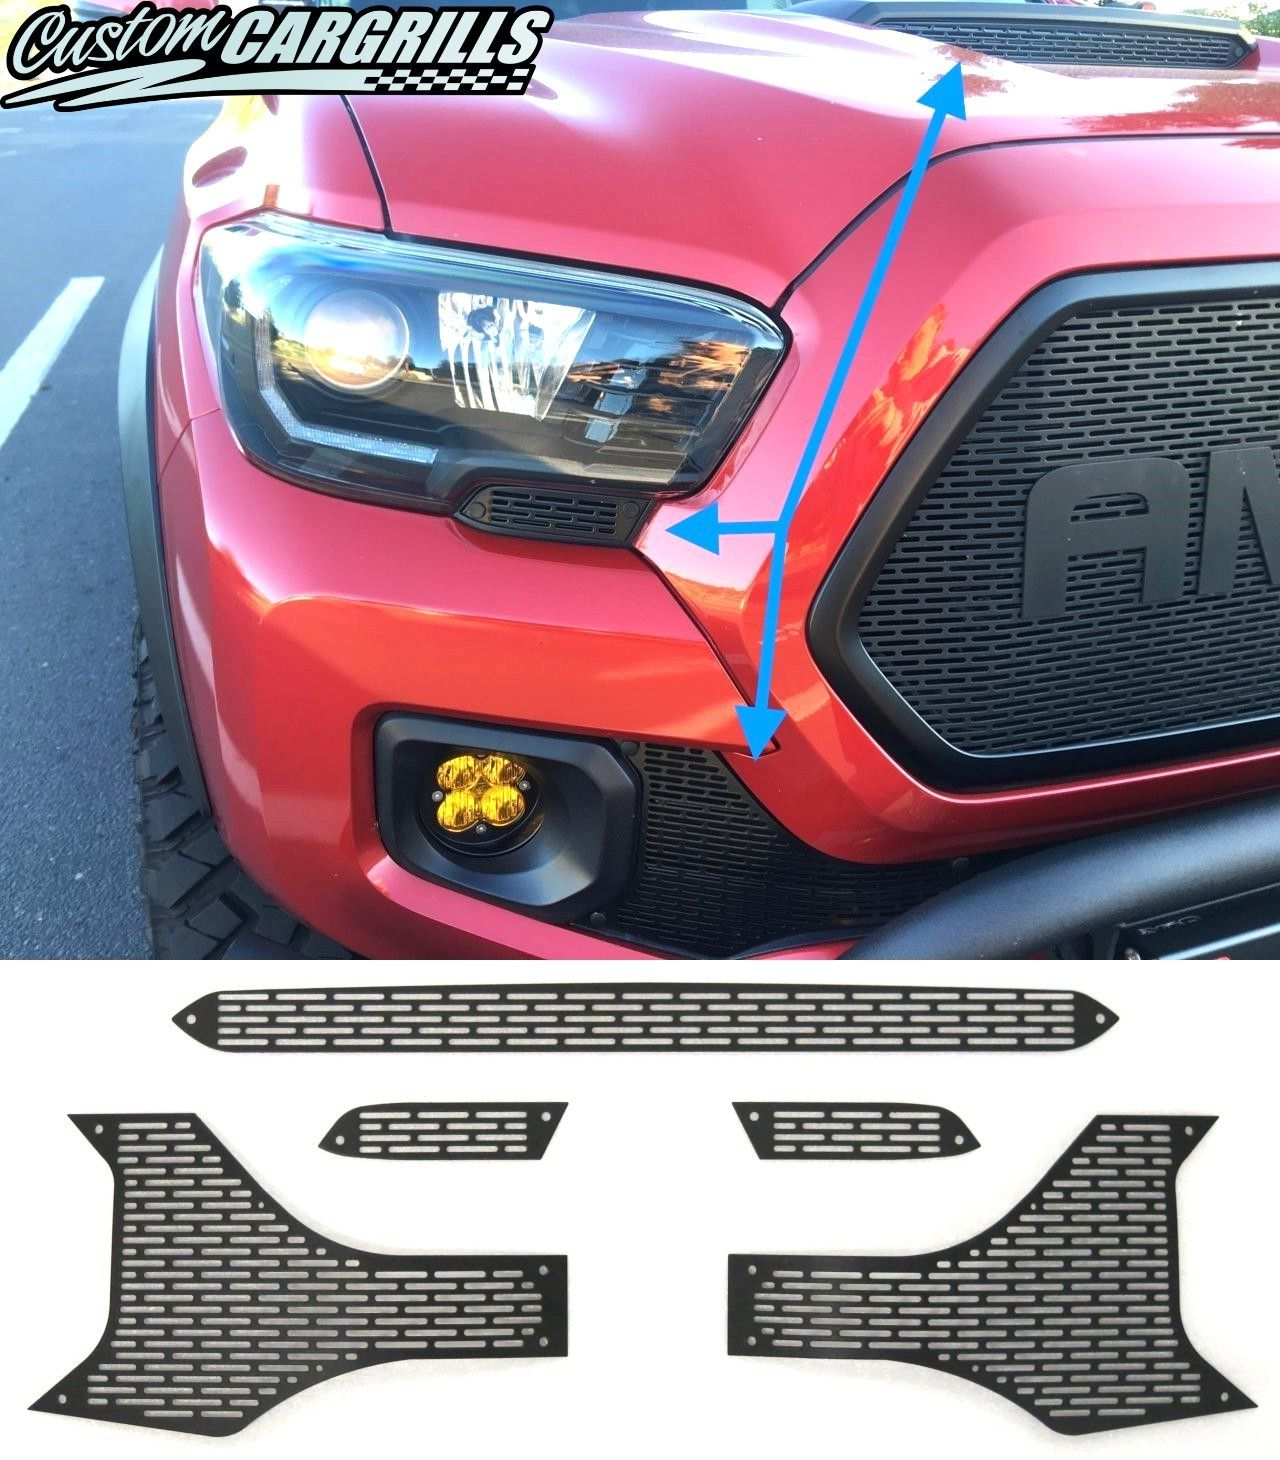 Bumper Grille For 2016-2017 Toyota Tacoma Textured Black Plastic